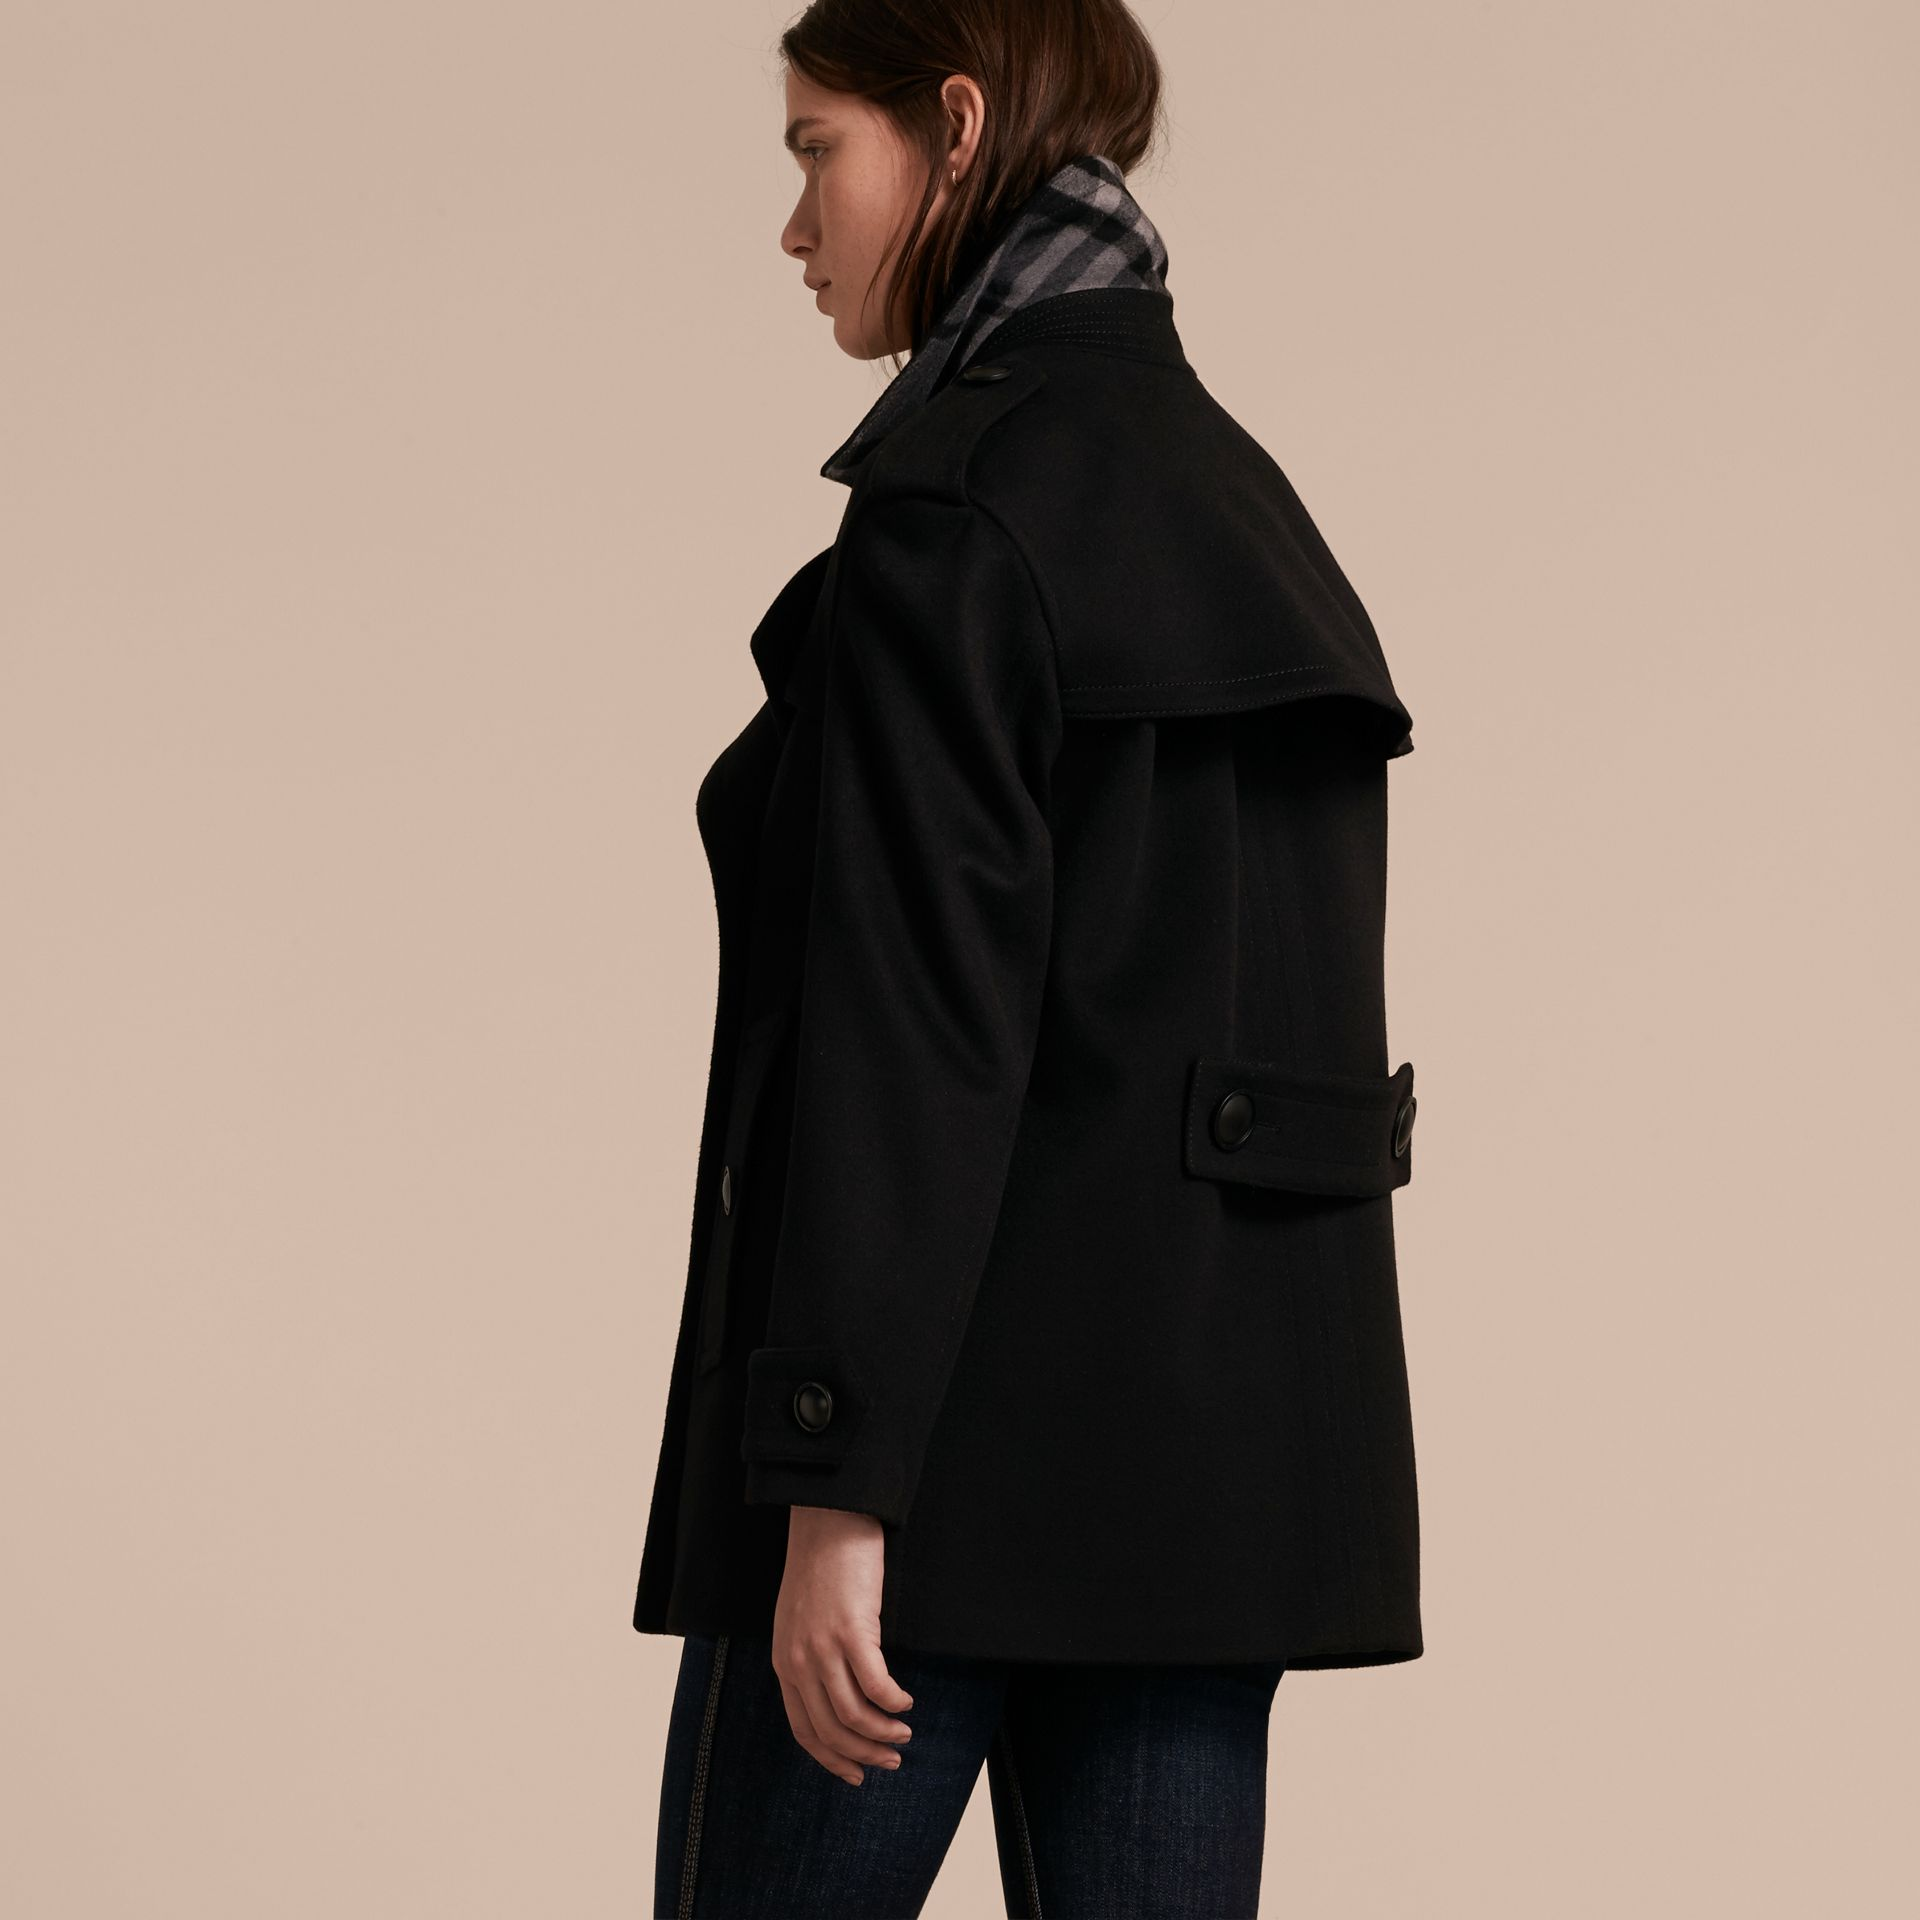 Black Wool Cashmere Pea Coat with Detachable Warmer - gallery image 6